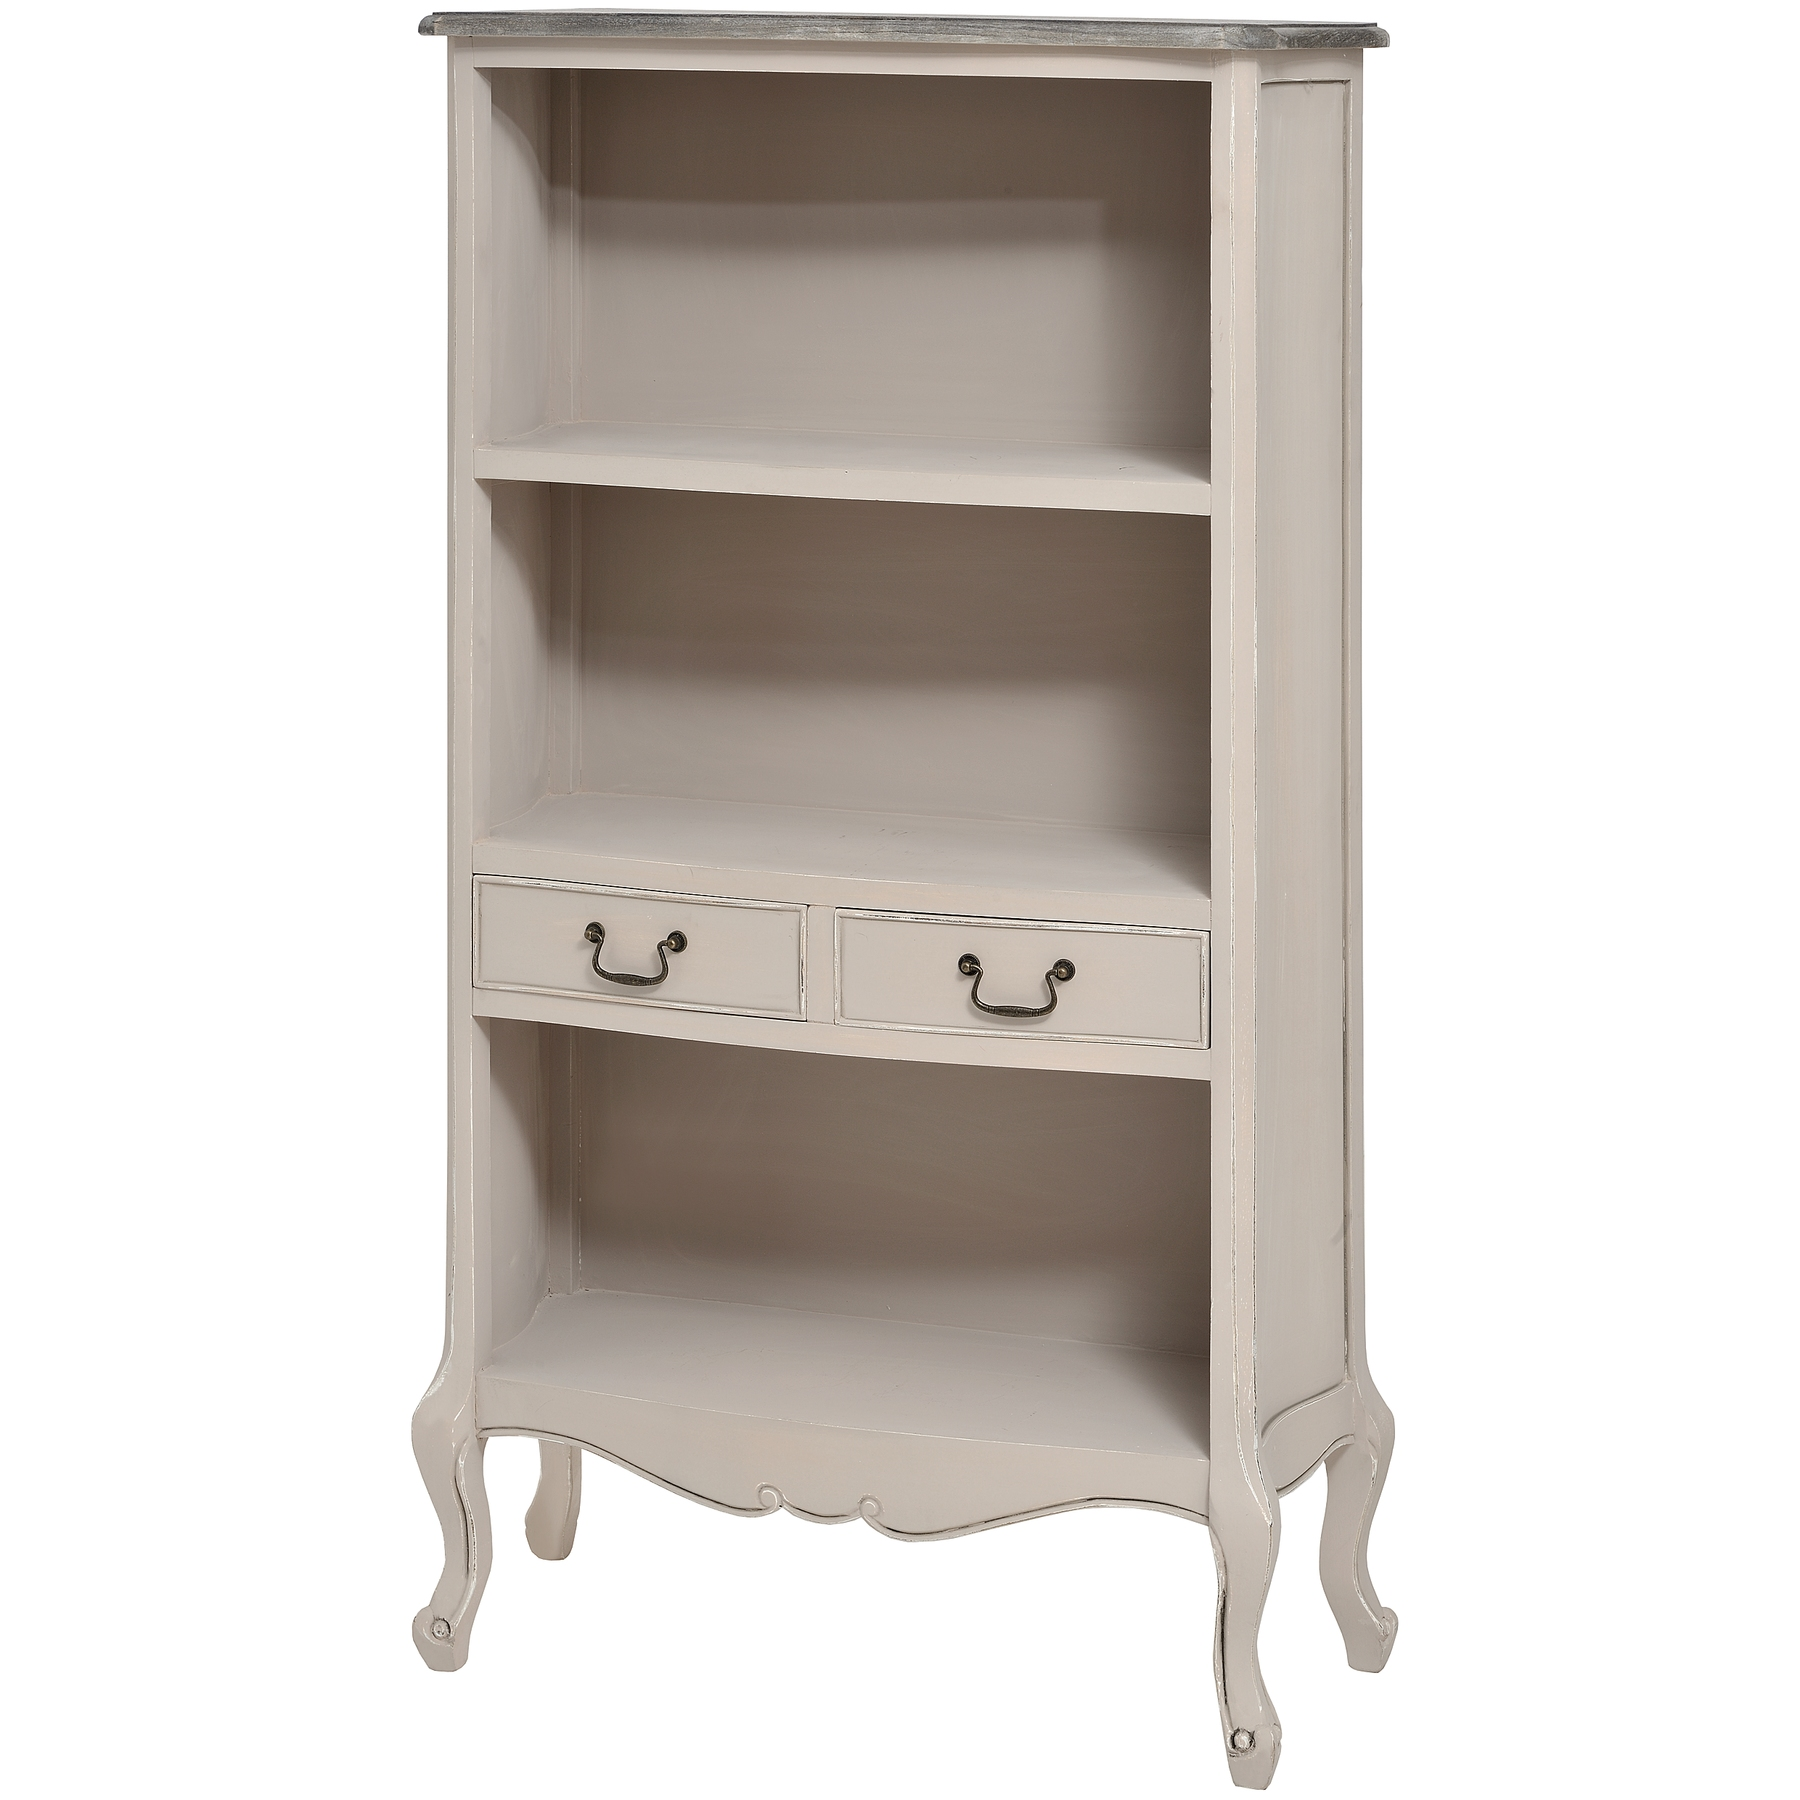 Louisiana Range - Tall Bookcase With 2 Drawers